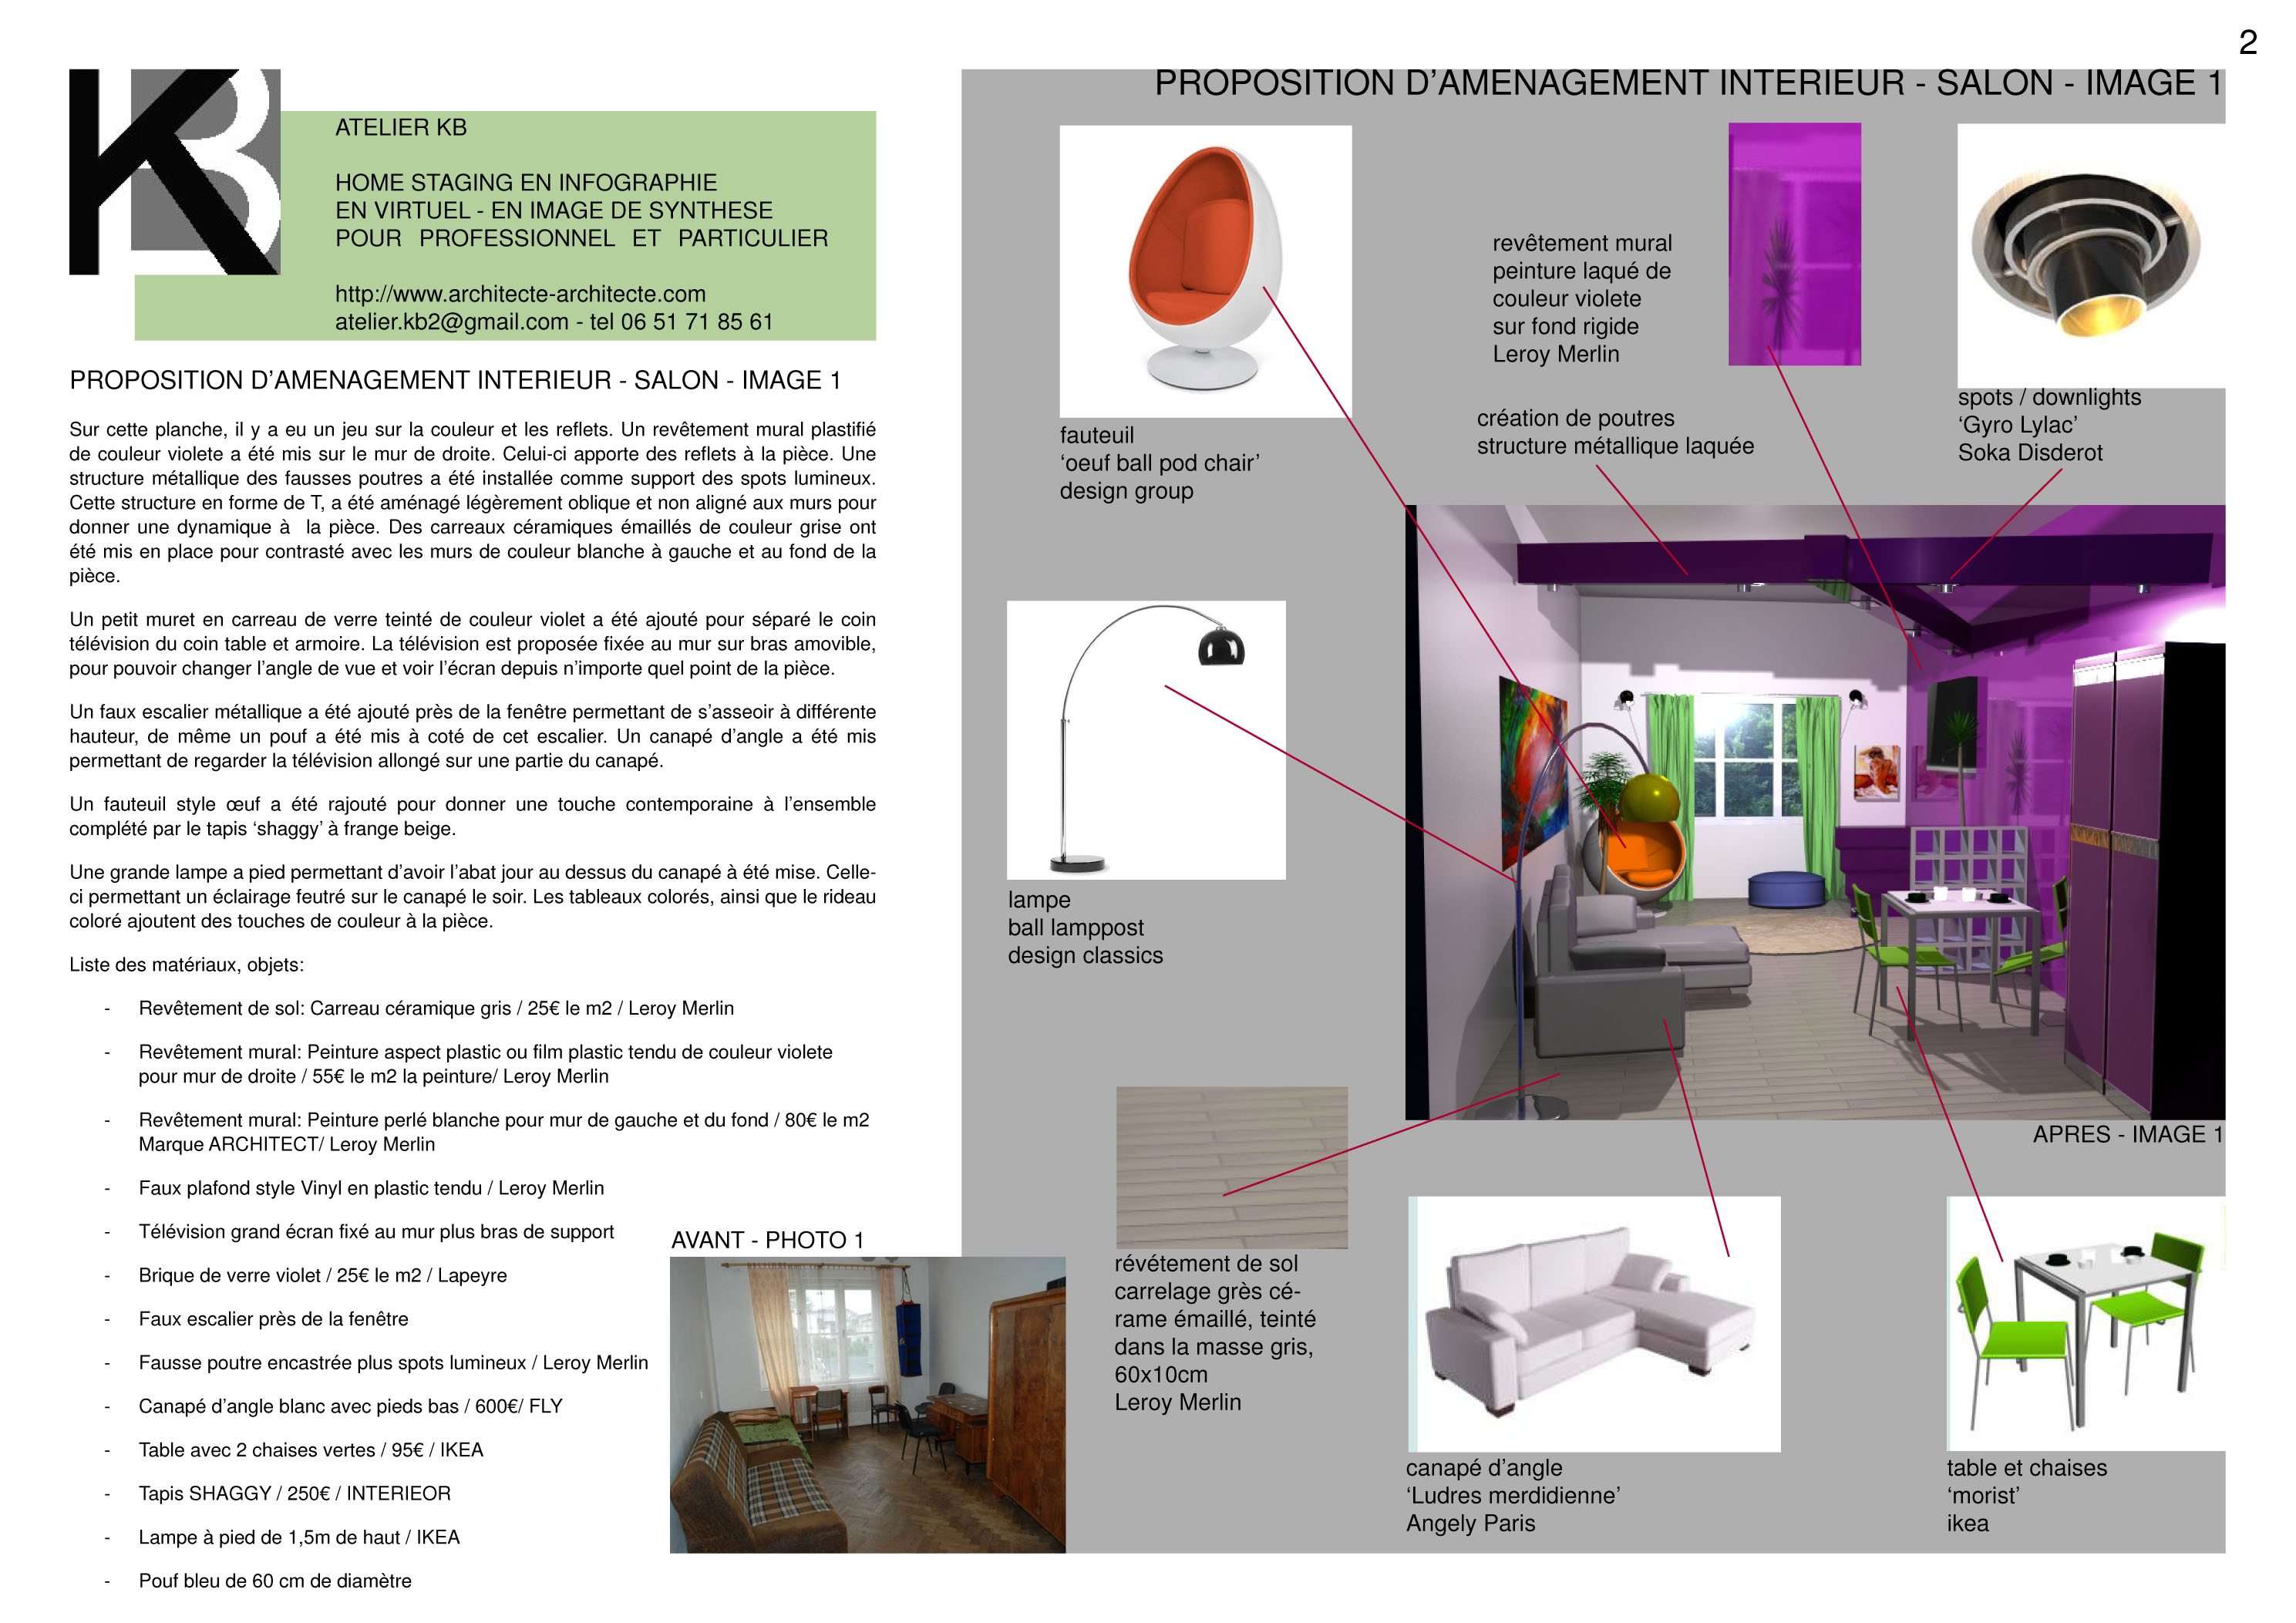 home staging en virtuel en infographie en 3d en image de synth se. Black Bedroom Furniture Sets. Home Design Ideas